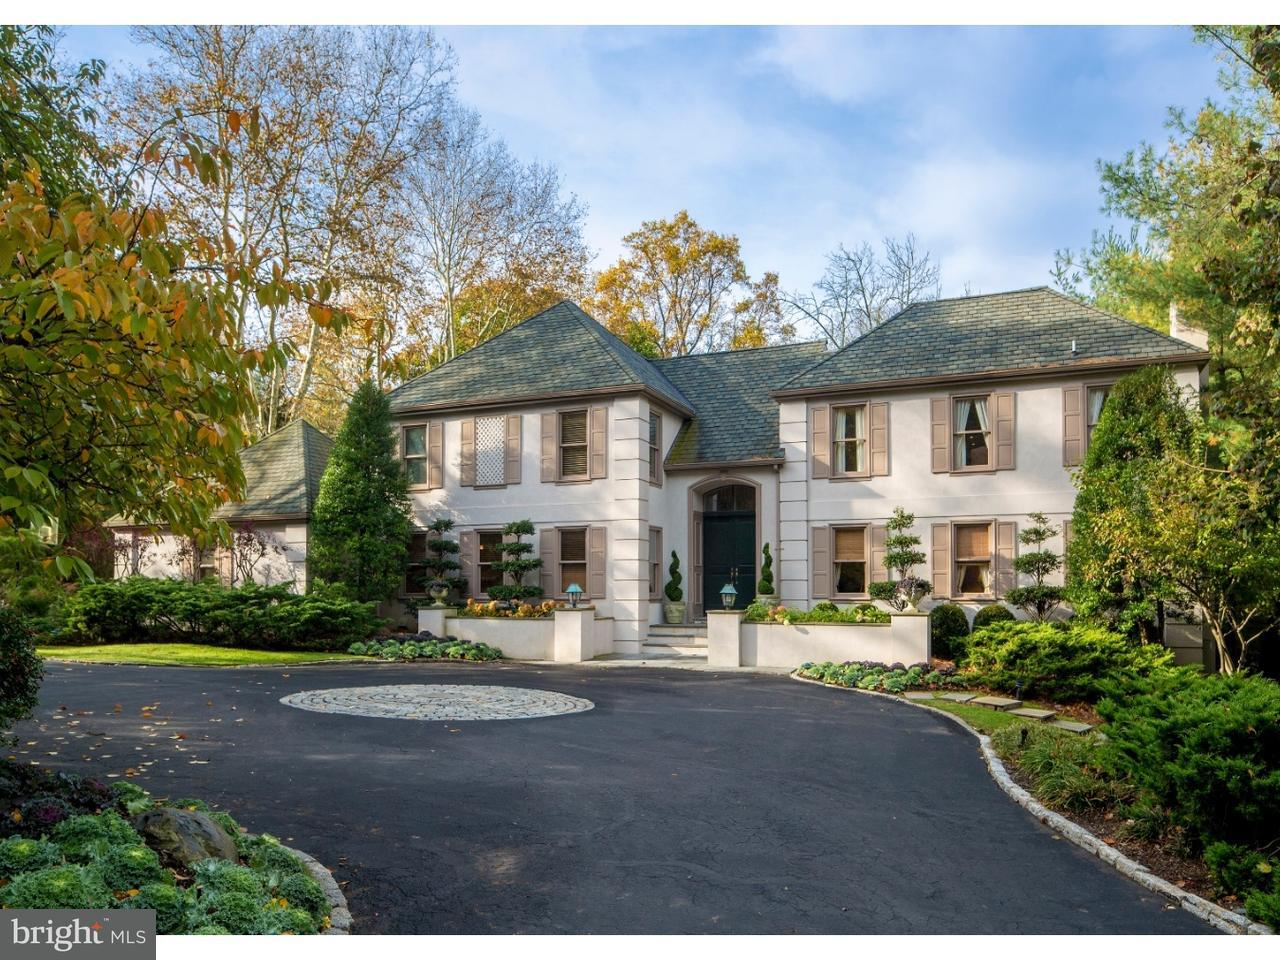 Single Family Home for Sale at 840 ROSCOMMON Road Bryn Mawr, Pennsylvania 19010 United States